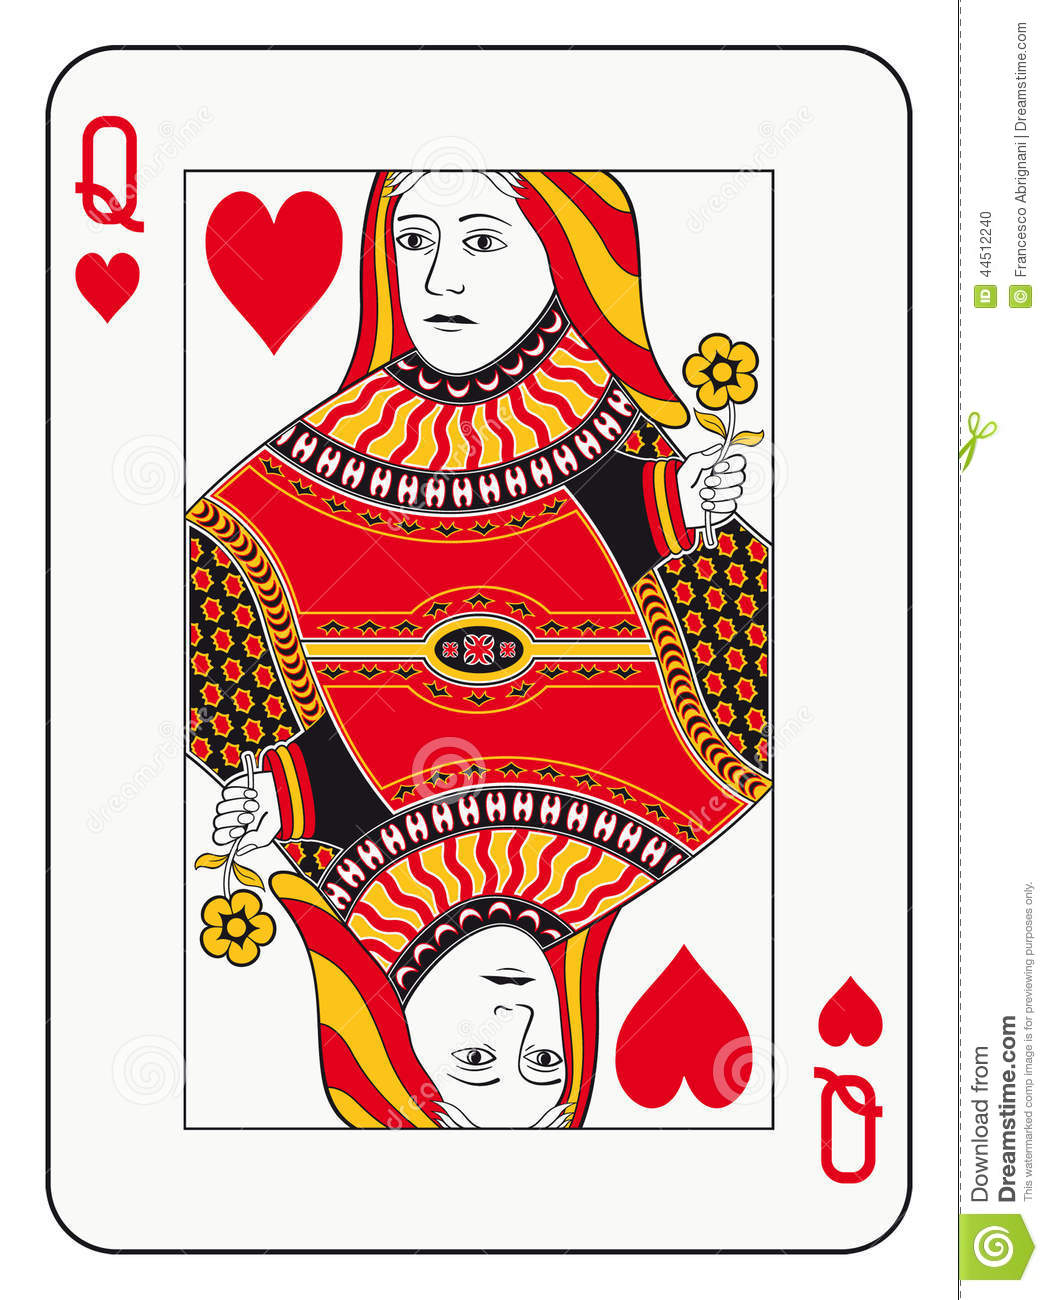 Clipart queen of hearts free Queen of hearts playing card clipart - ClipartFest free